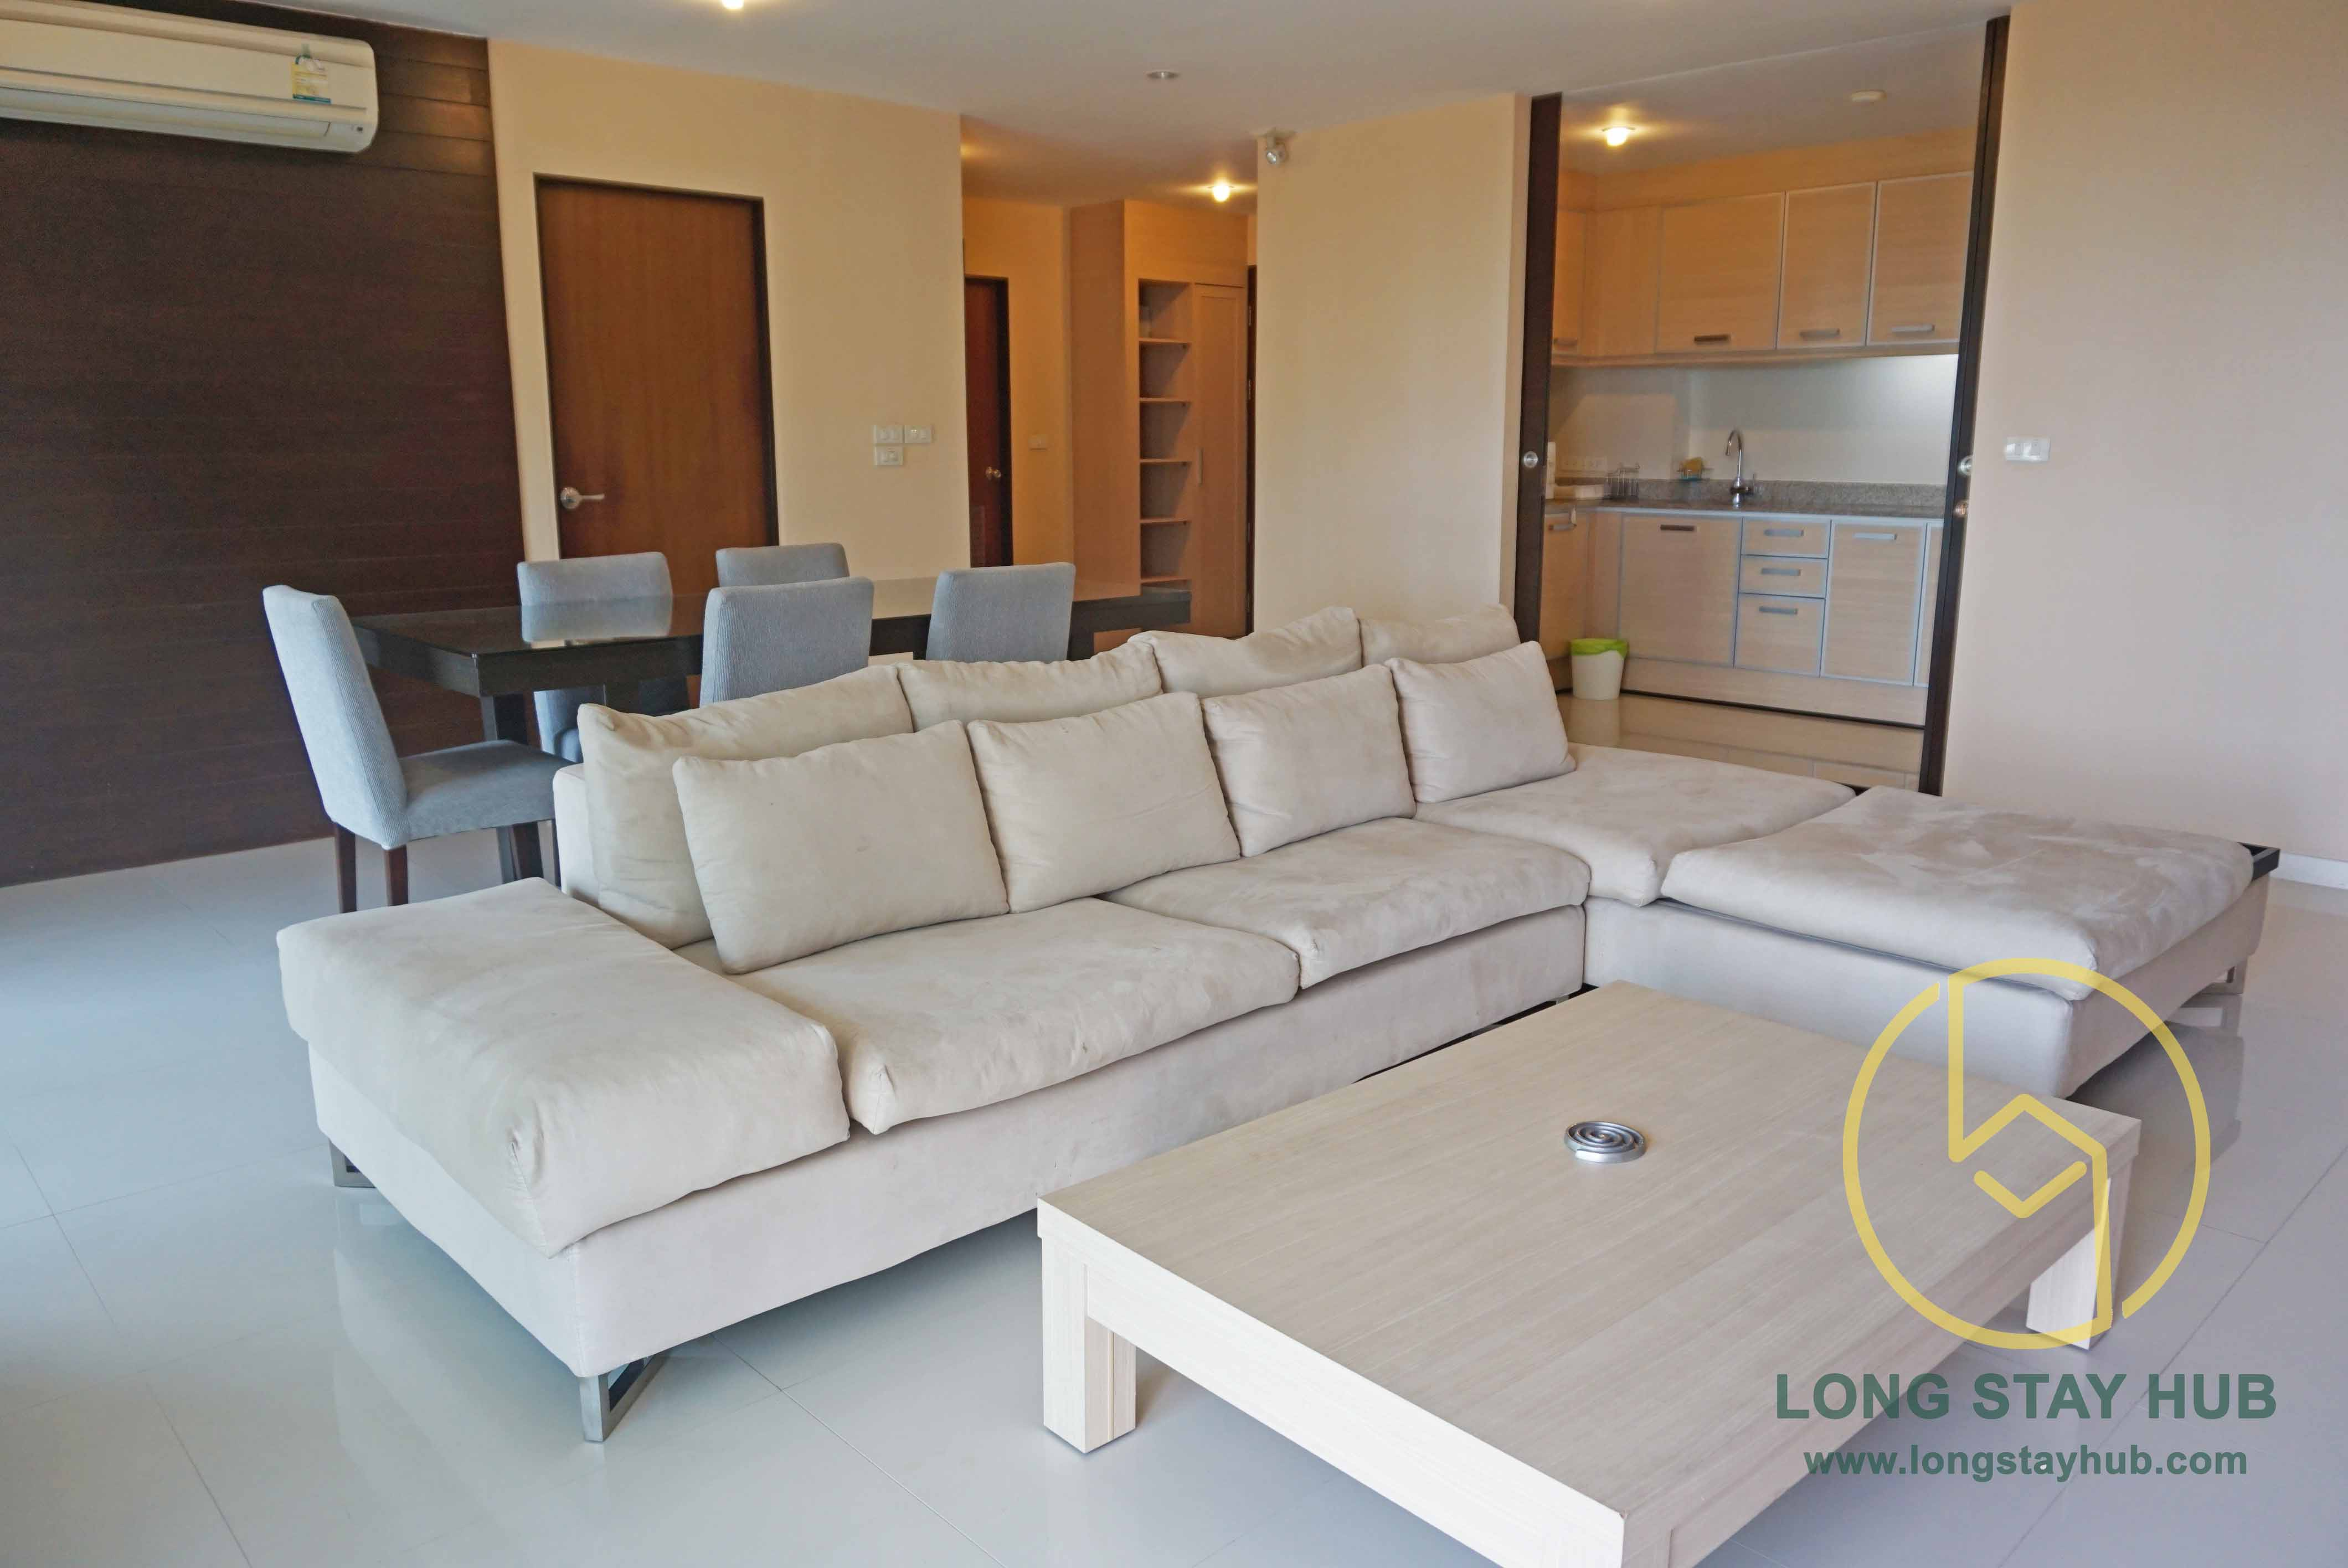 [Rented]A 153 square-meter two-bedrooms corner unit with Jacuzzi at Peak Garden, near Shangri-la hotel